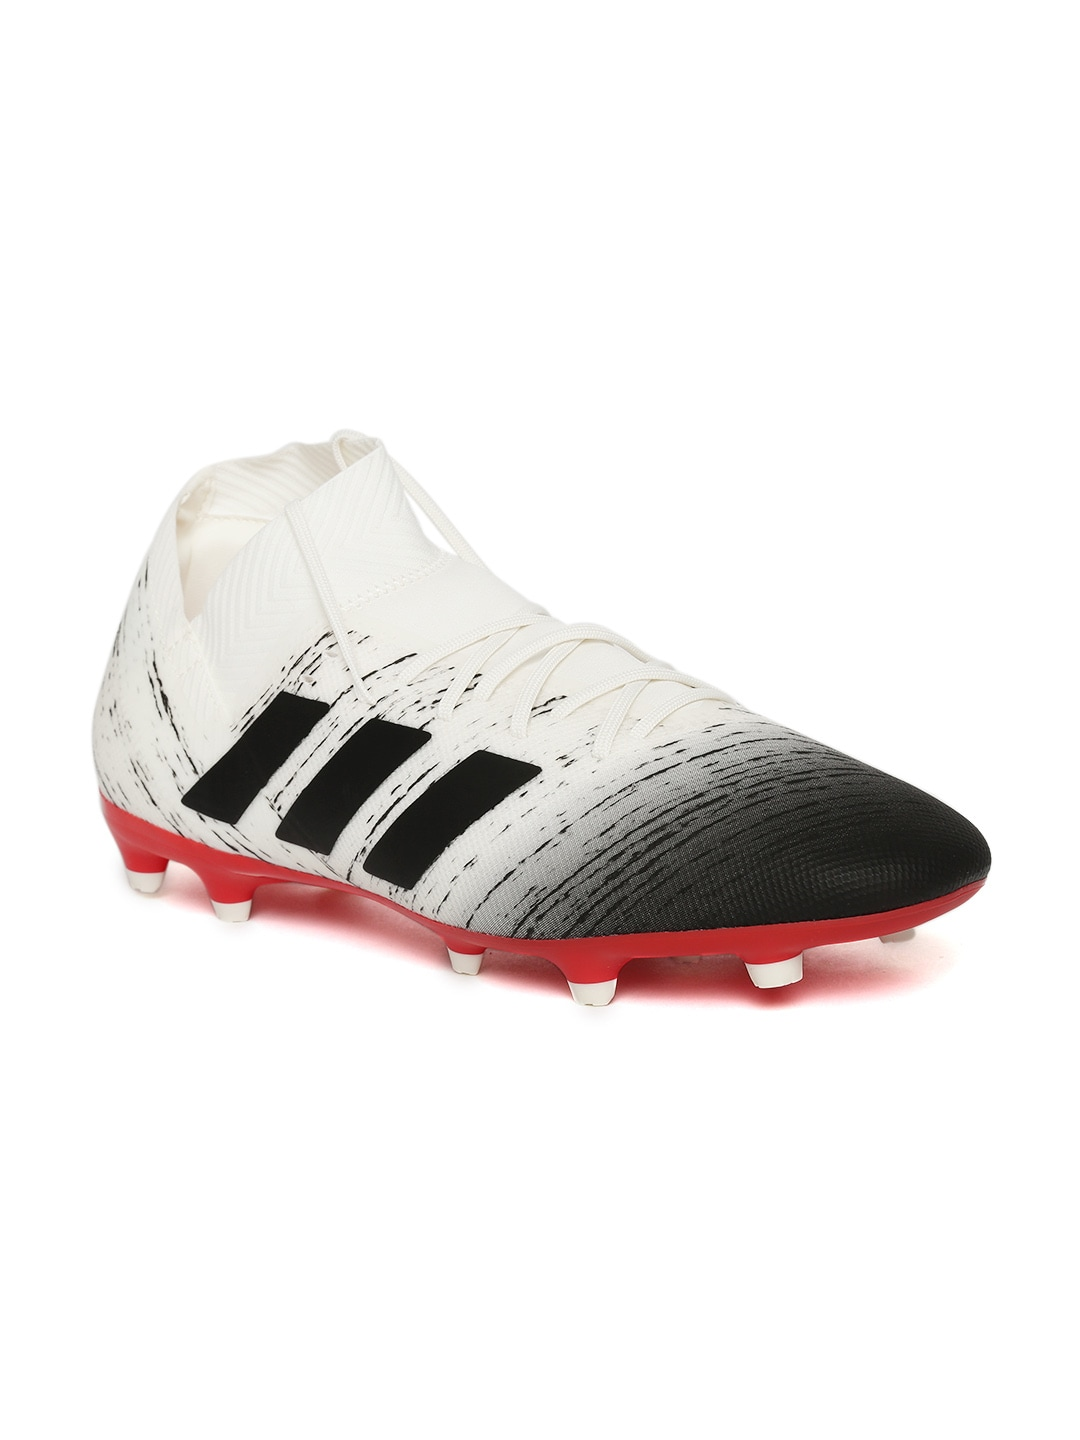 08985c577f0 Adidas Messi - Buy Adidas Messi online in India